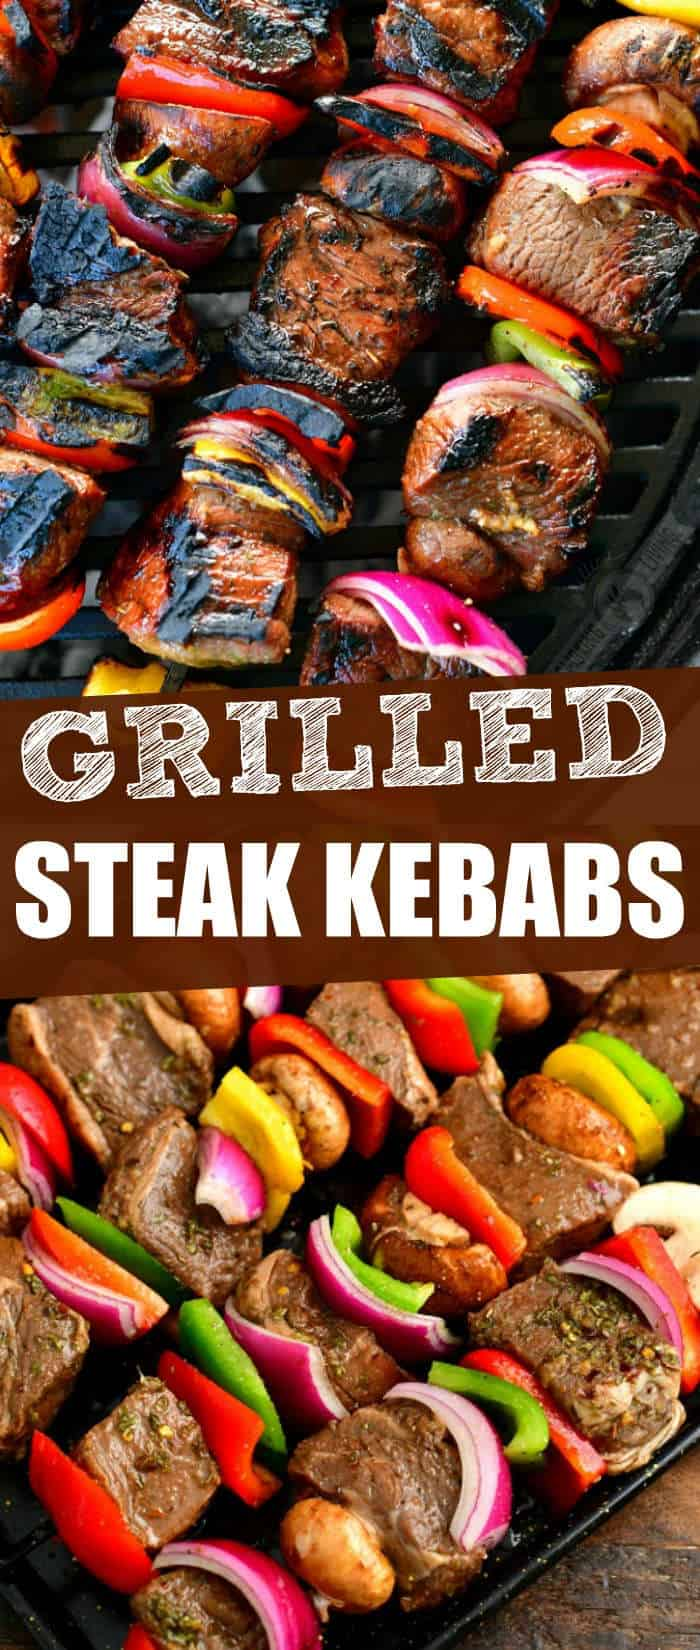 collage of two images on grilled steak kebab skewers on the grill on top and uncooked steak and vegetable skewers in a baking pan on the bottom